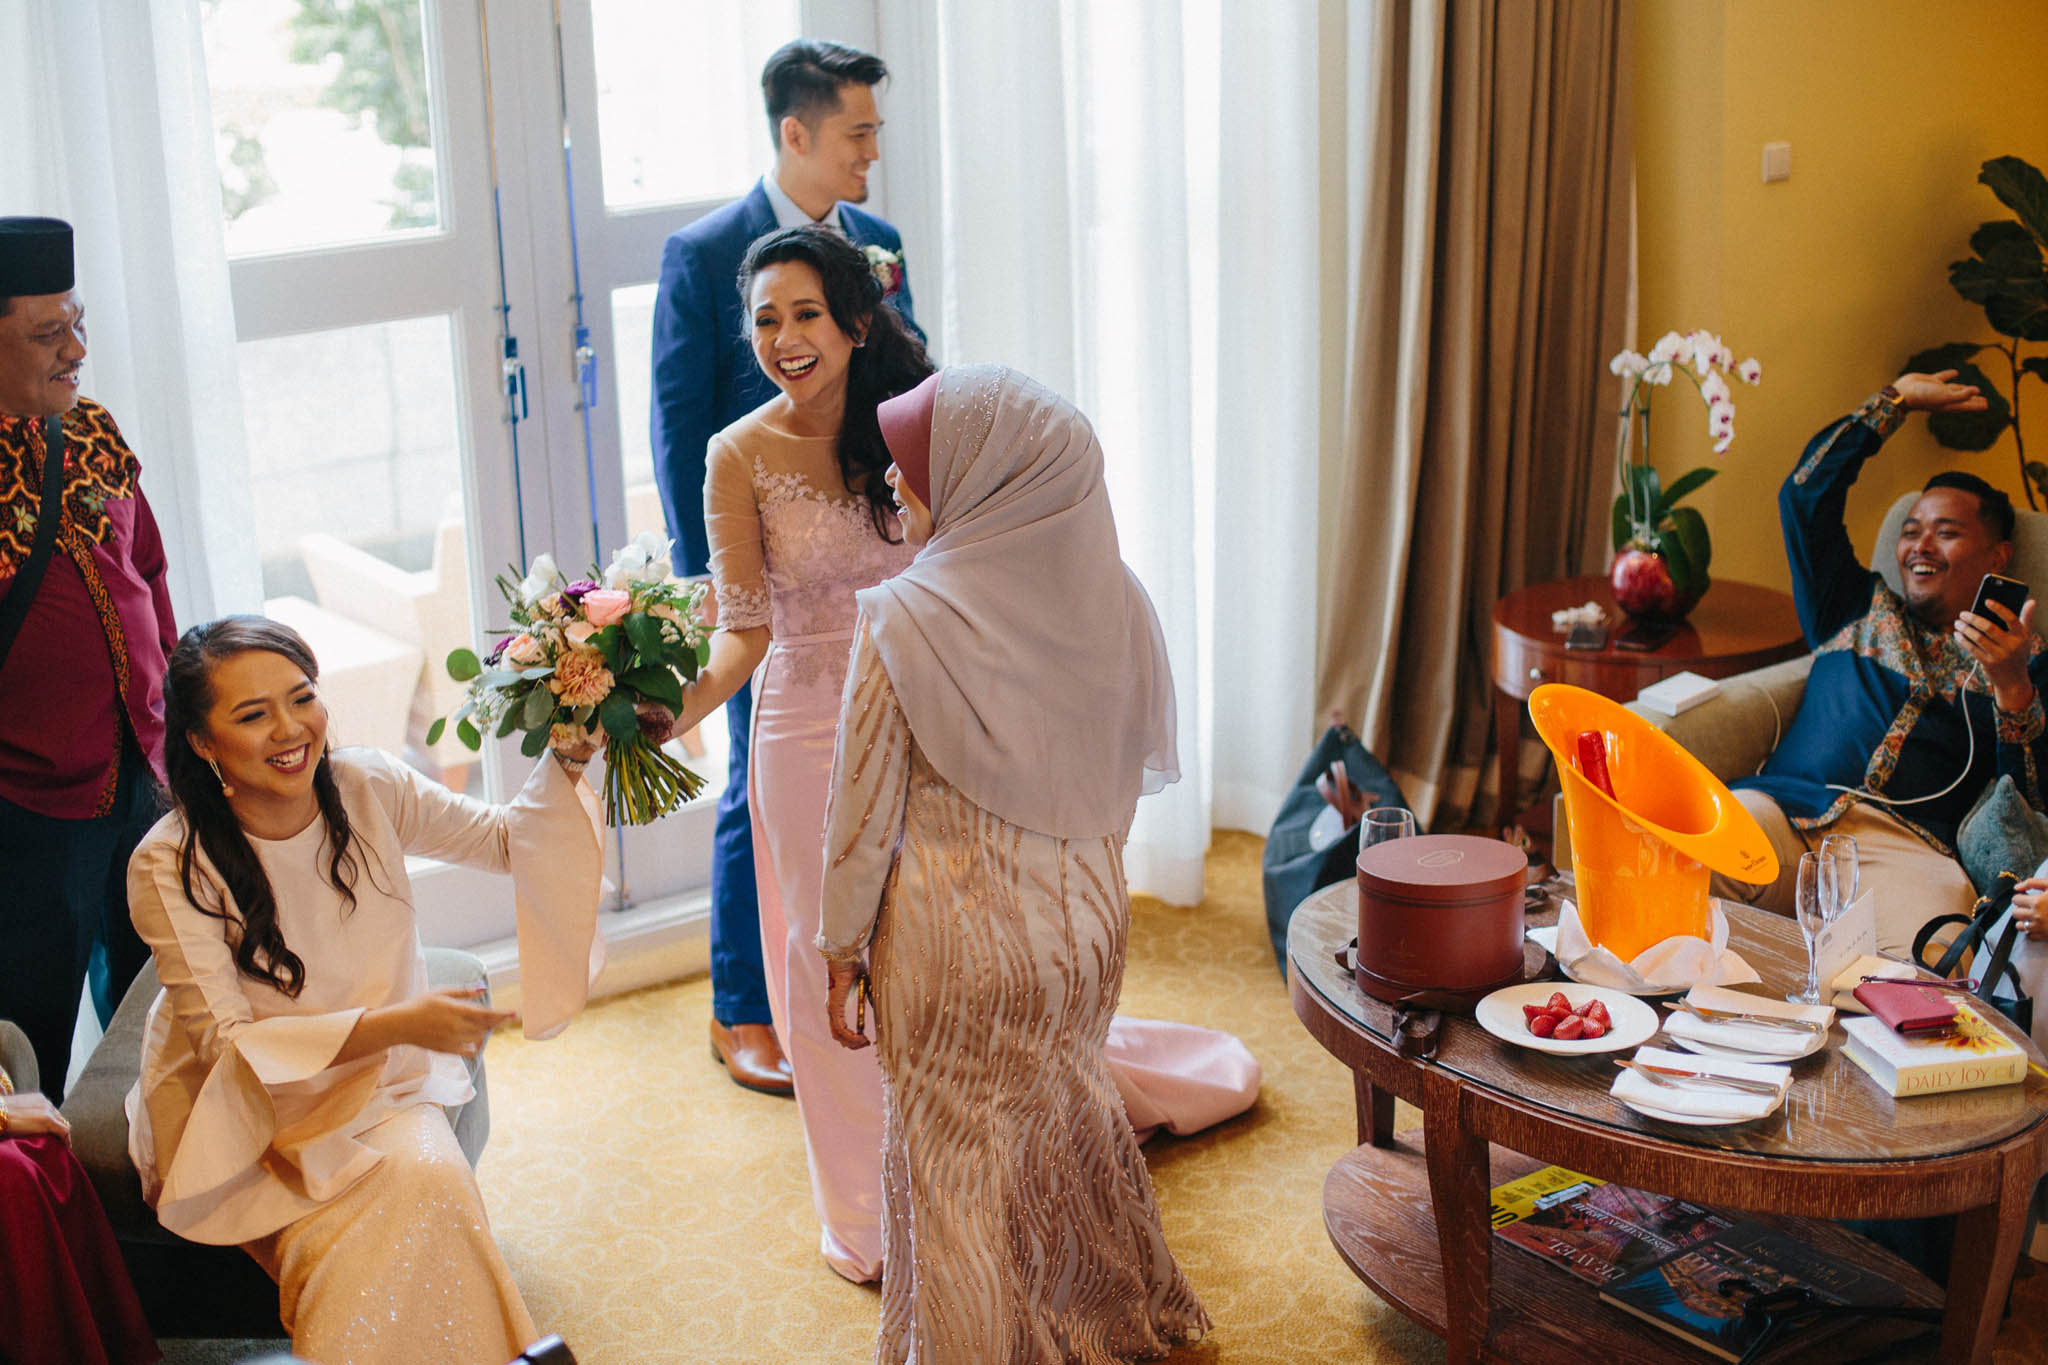 singapore-wedding-photographer-wedding-hafiana-teck-kuan-074.jpg